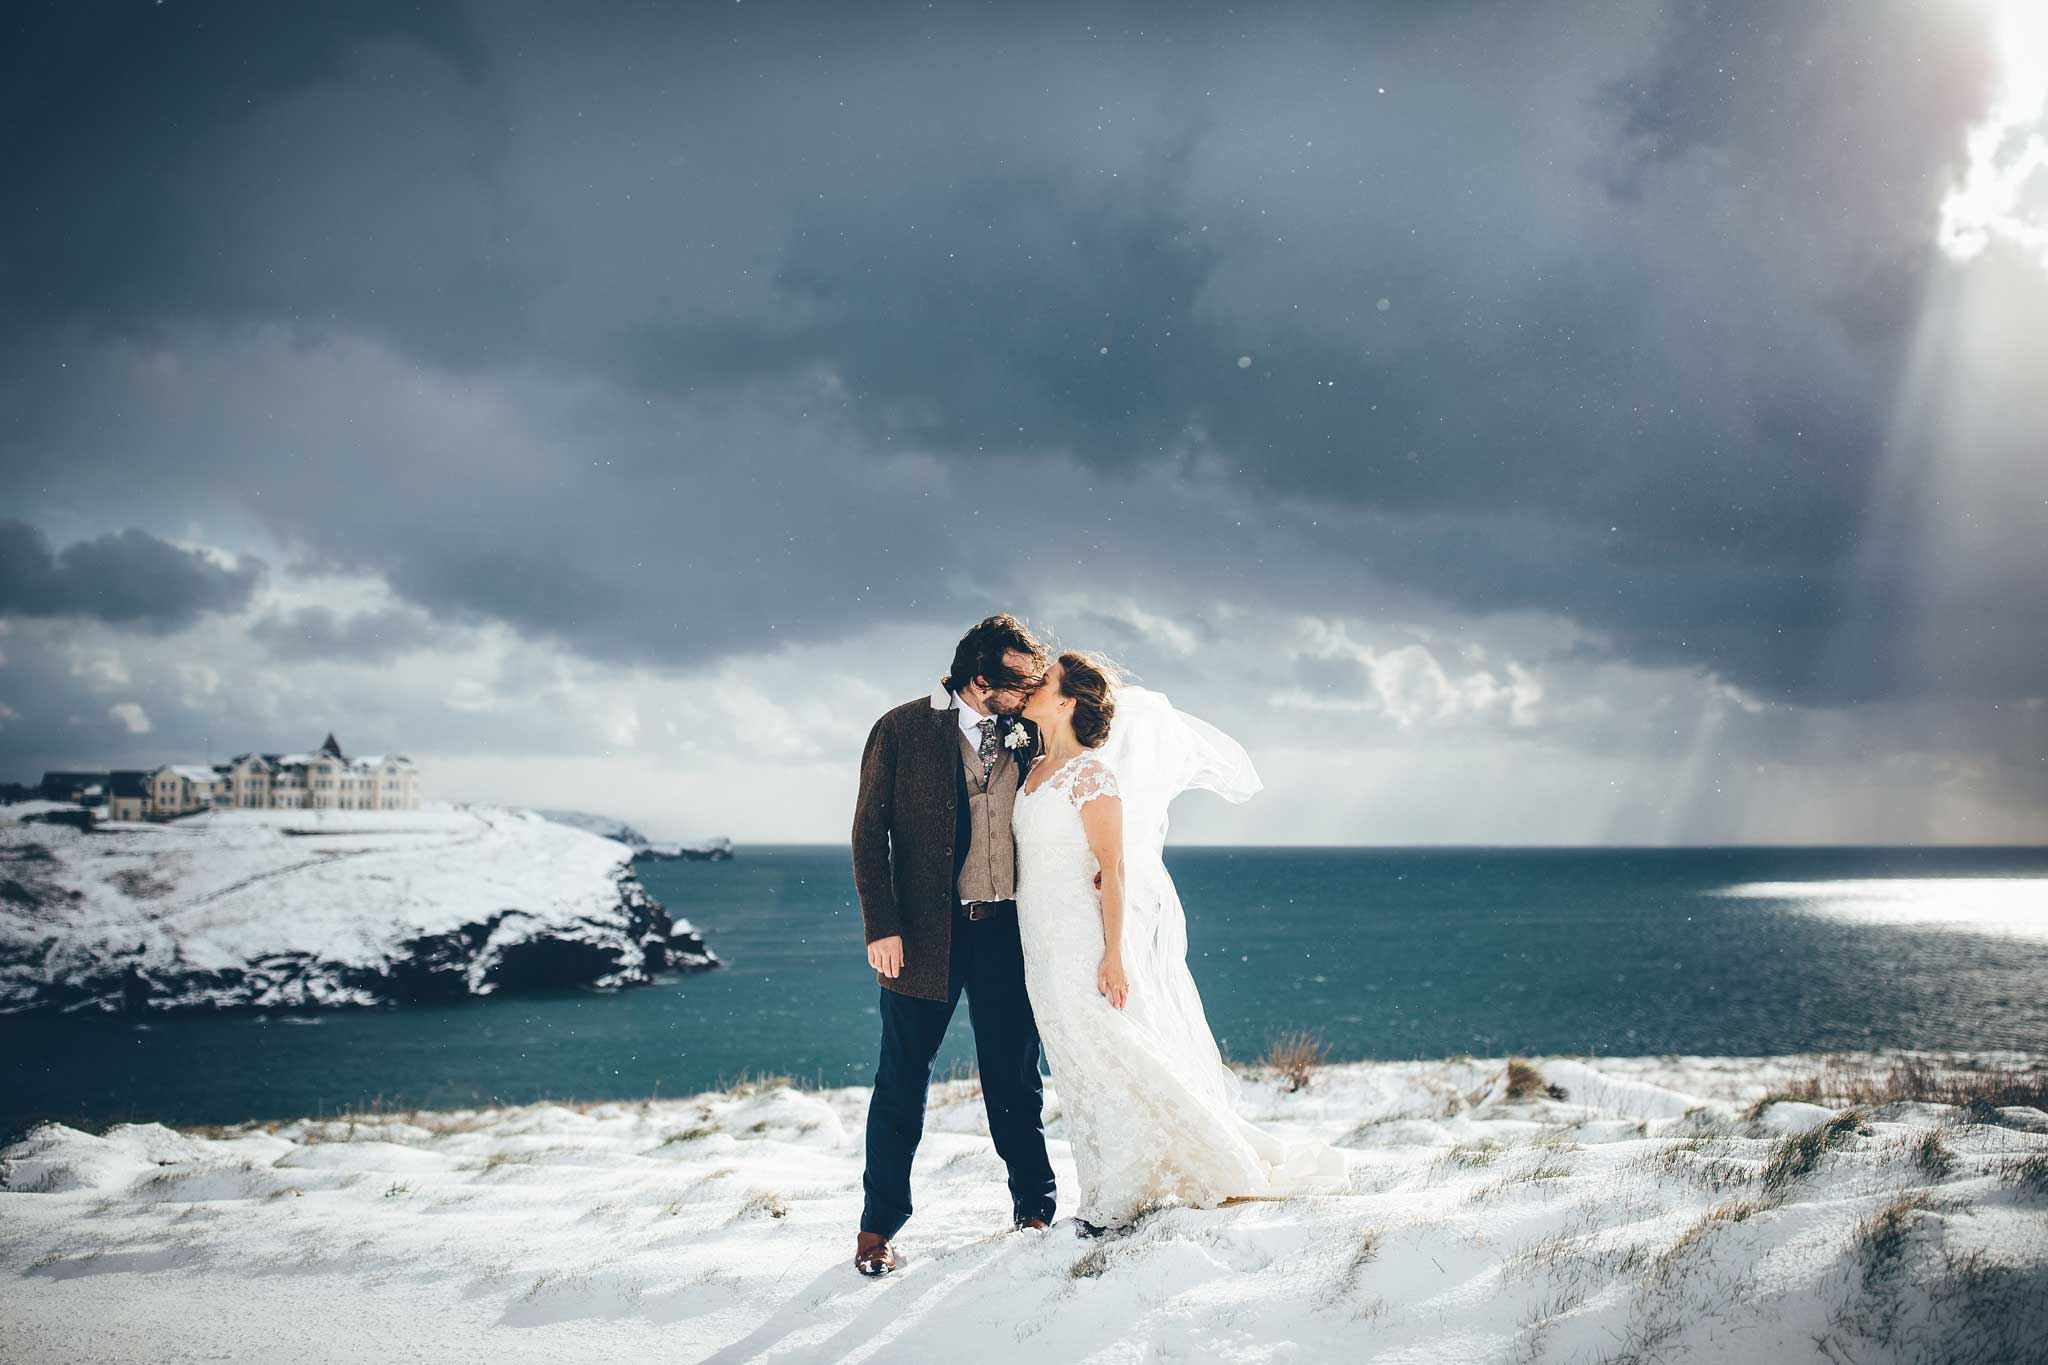 The snow wedding